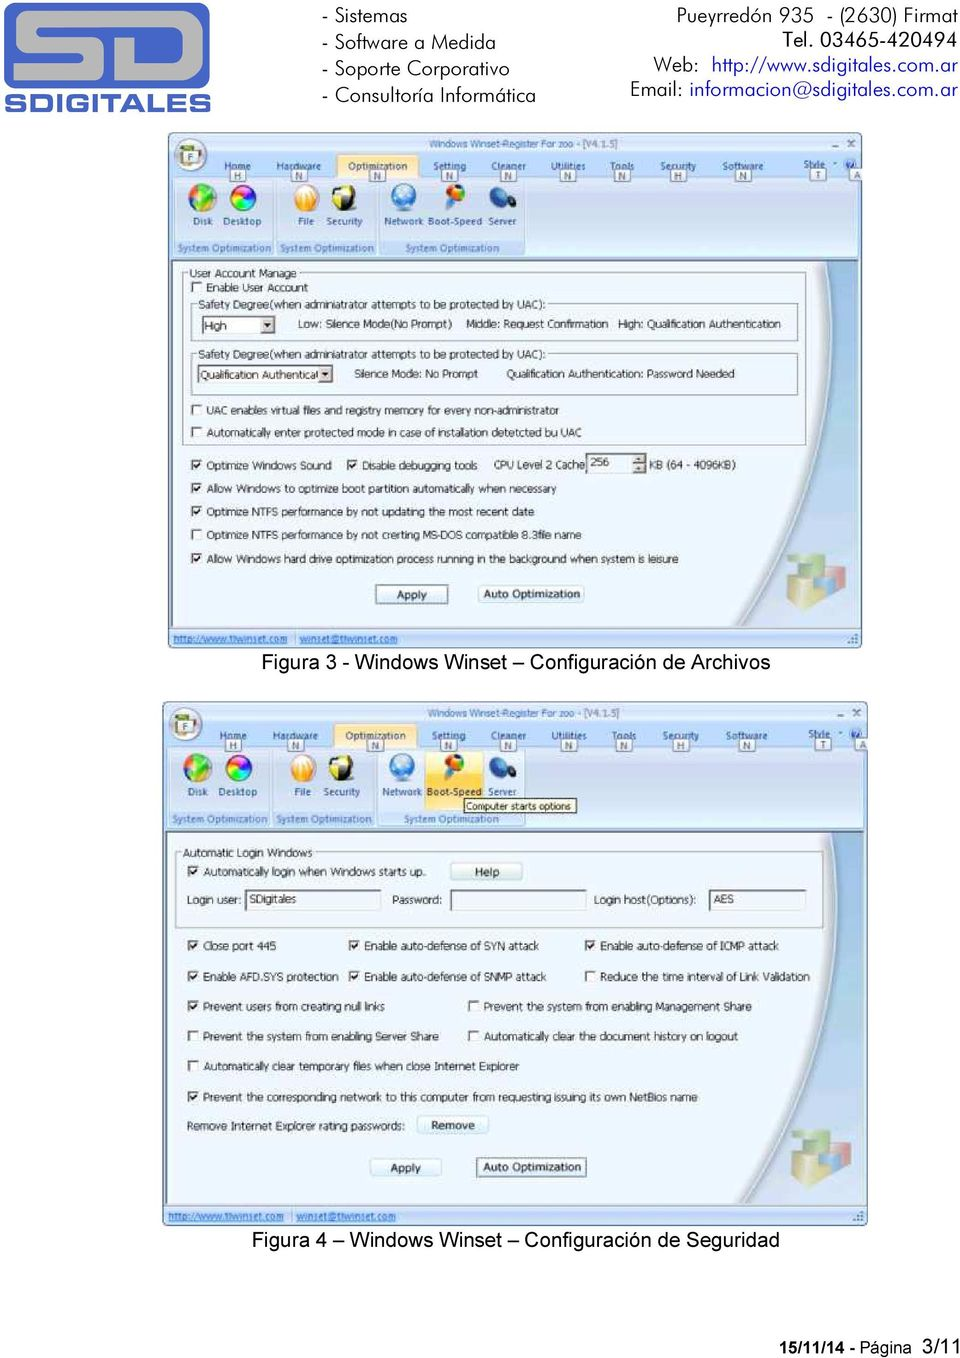 Figura 4 Windows Winset